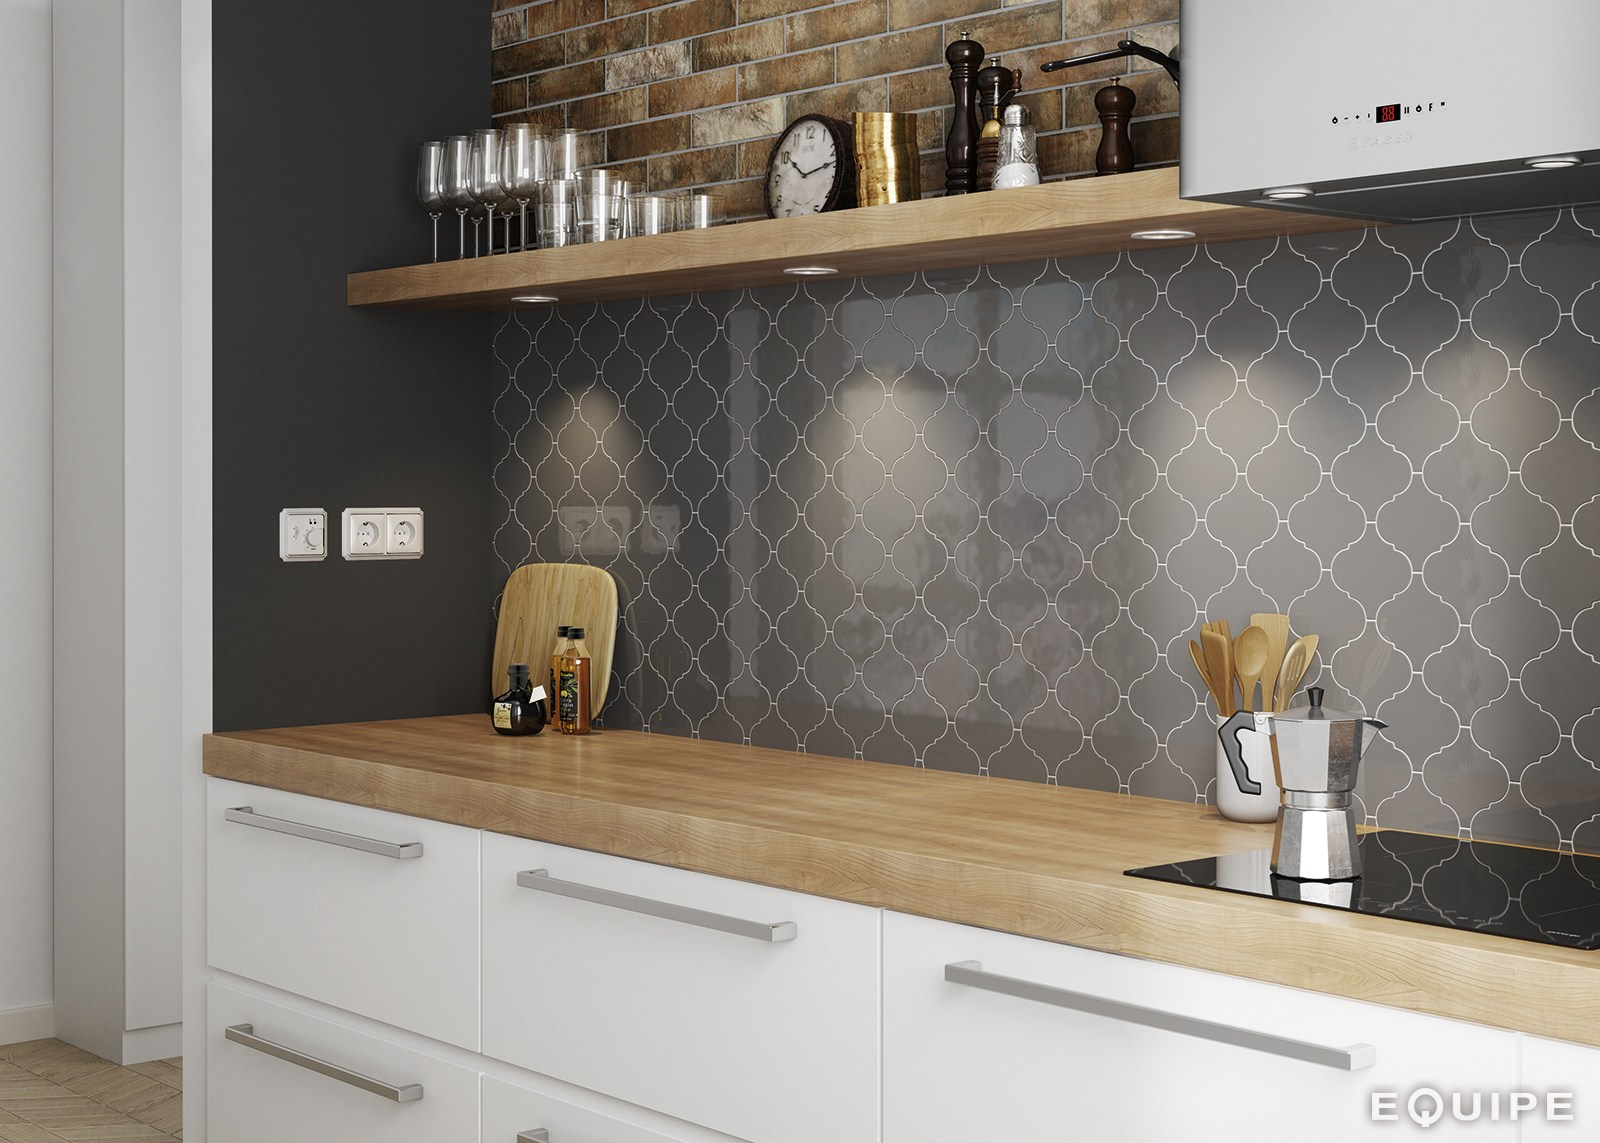 Scale Wall Tiles By Equipe Ceramicas